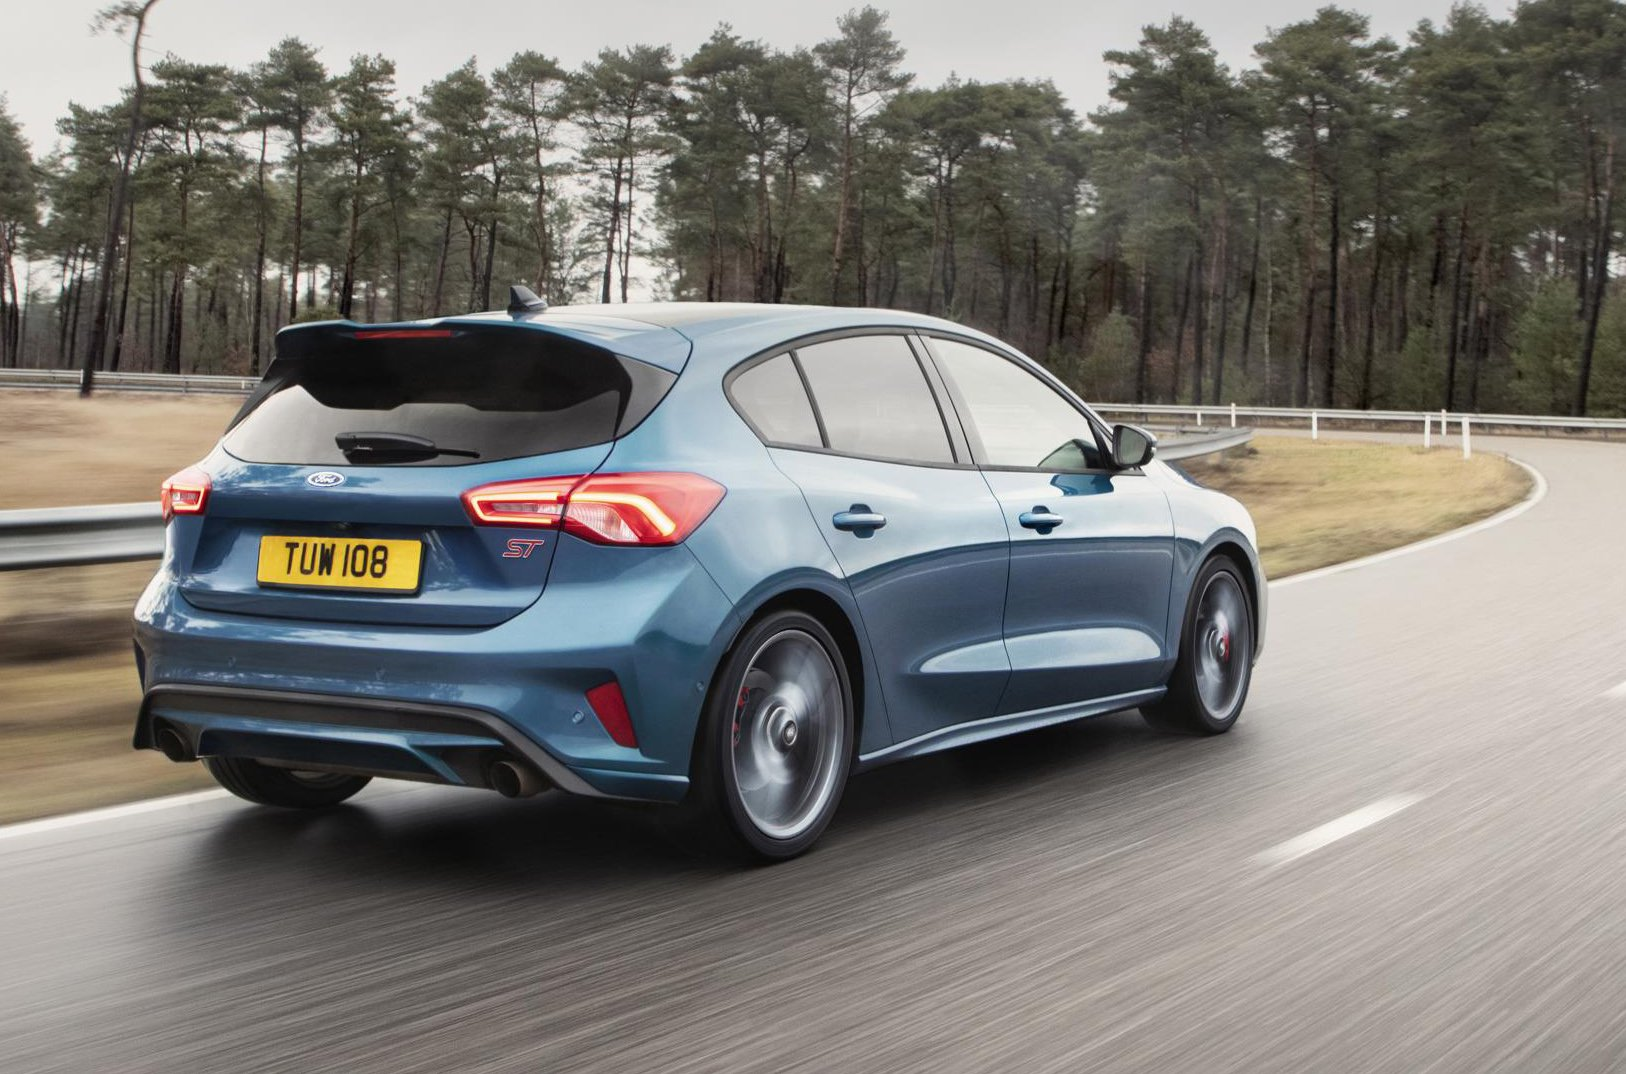 2019 Ford Focus ST: Price, spec and release date